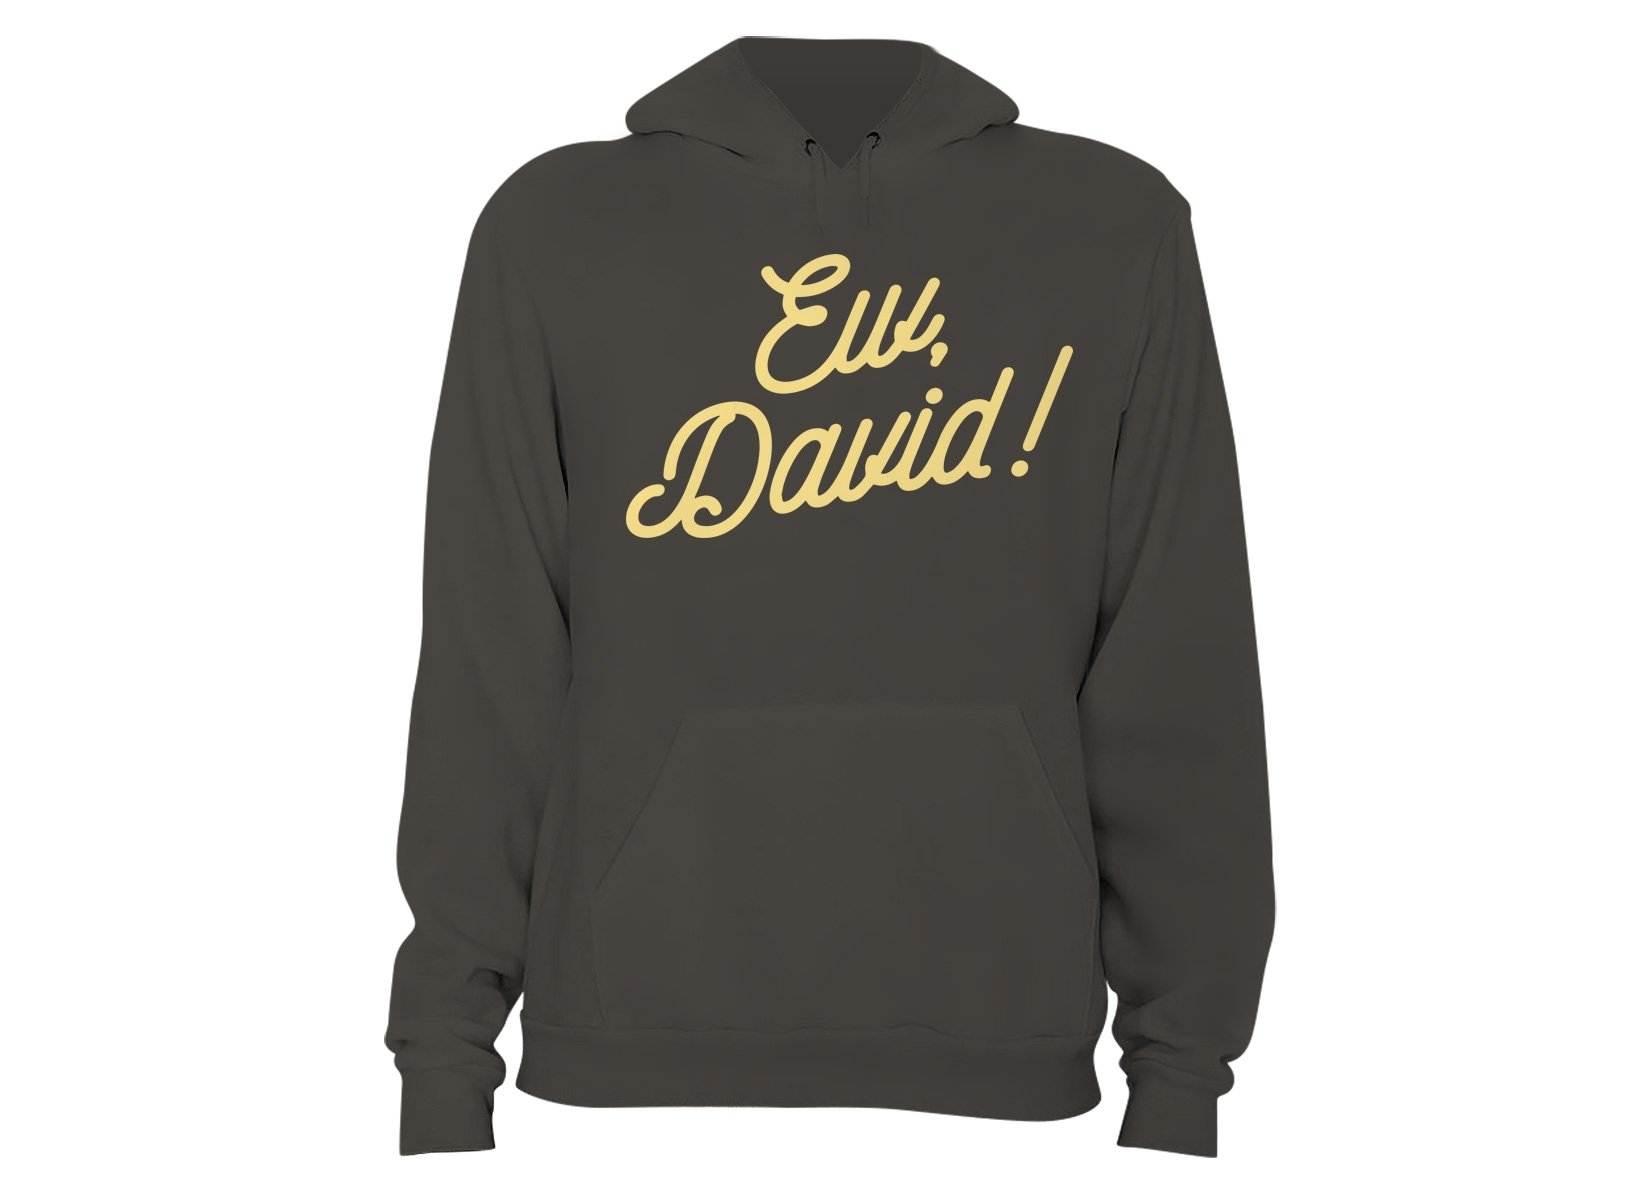 Ew, David! on Hoodie